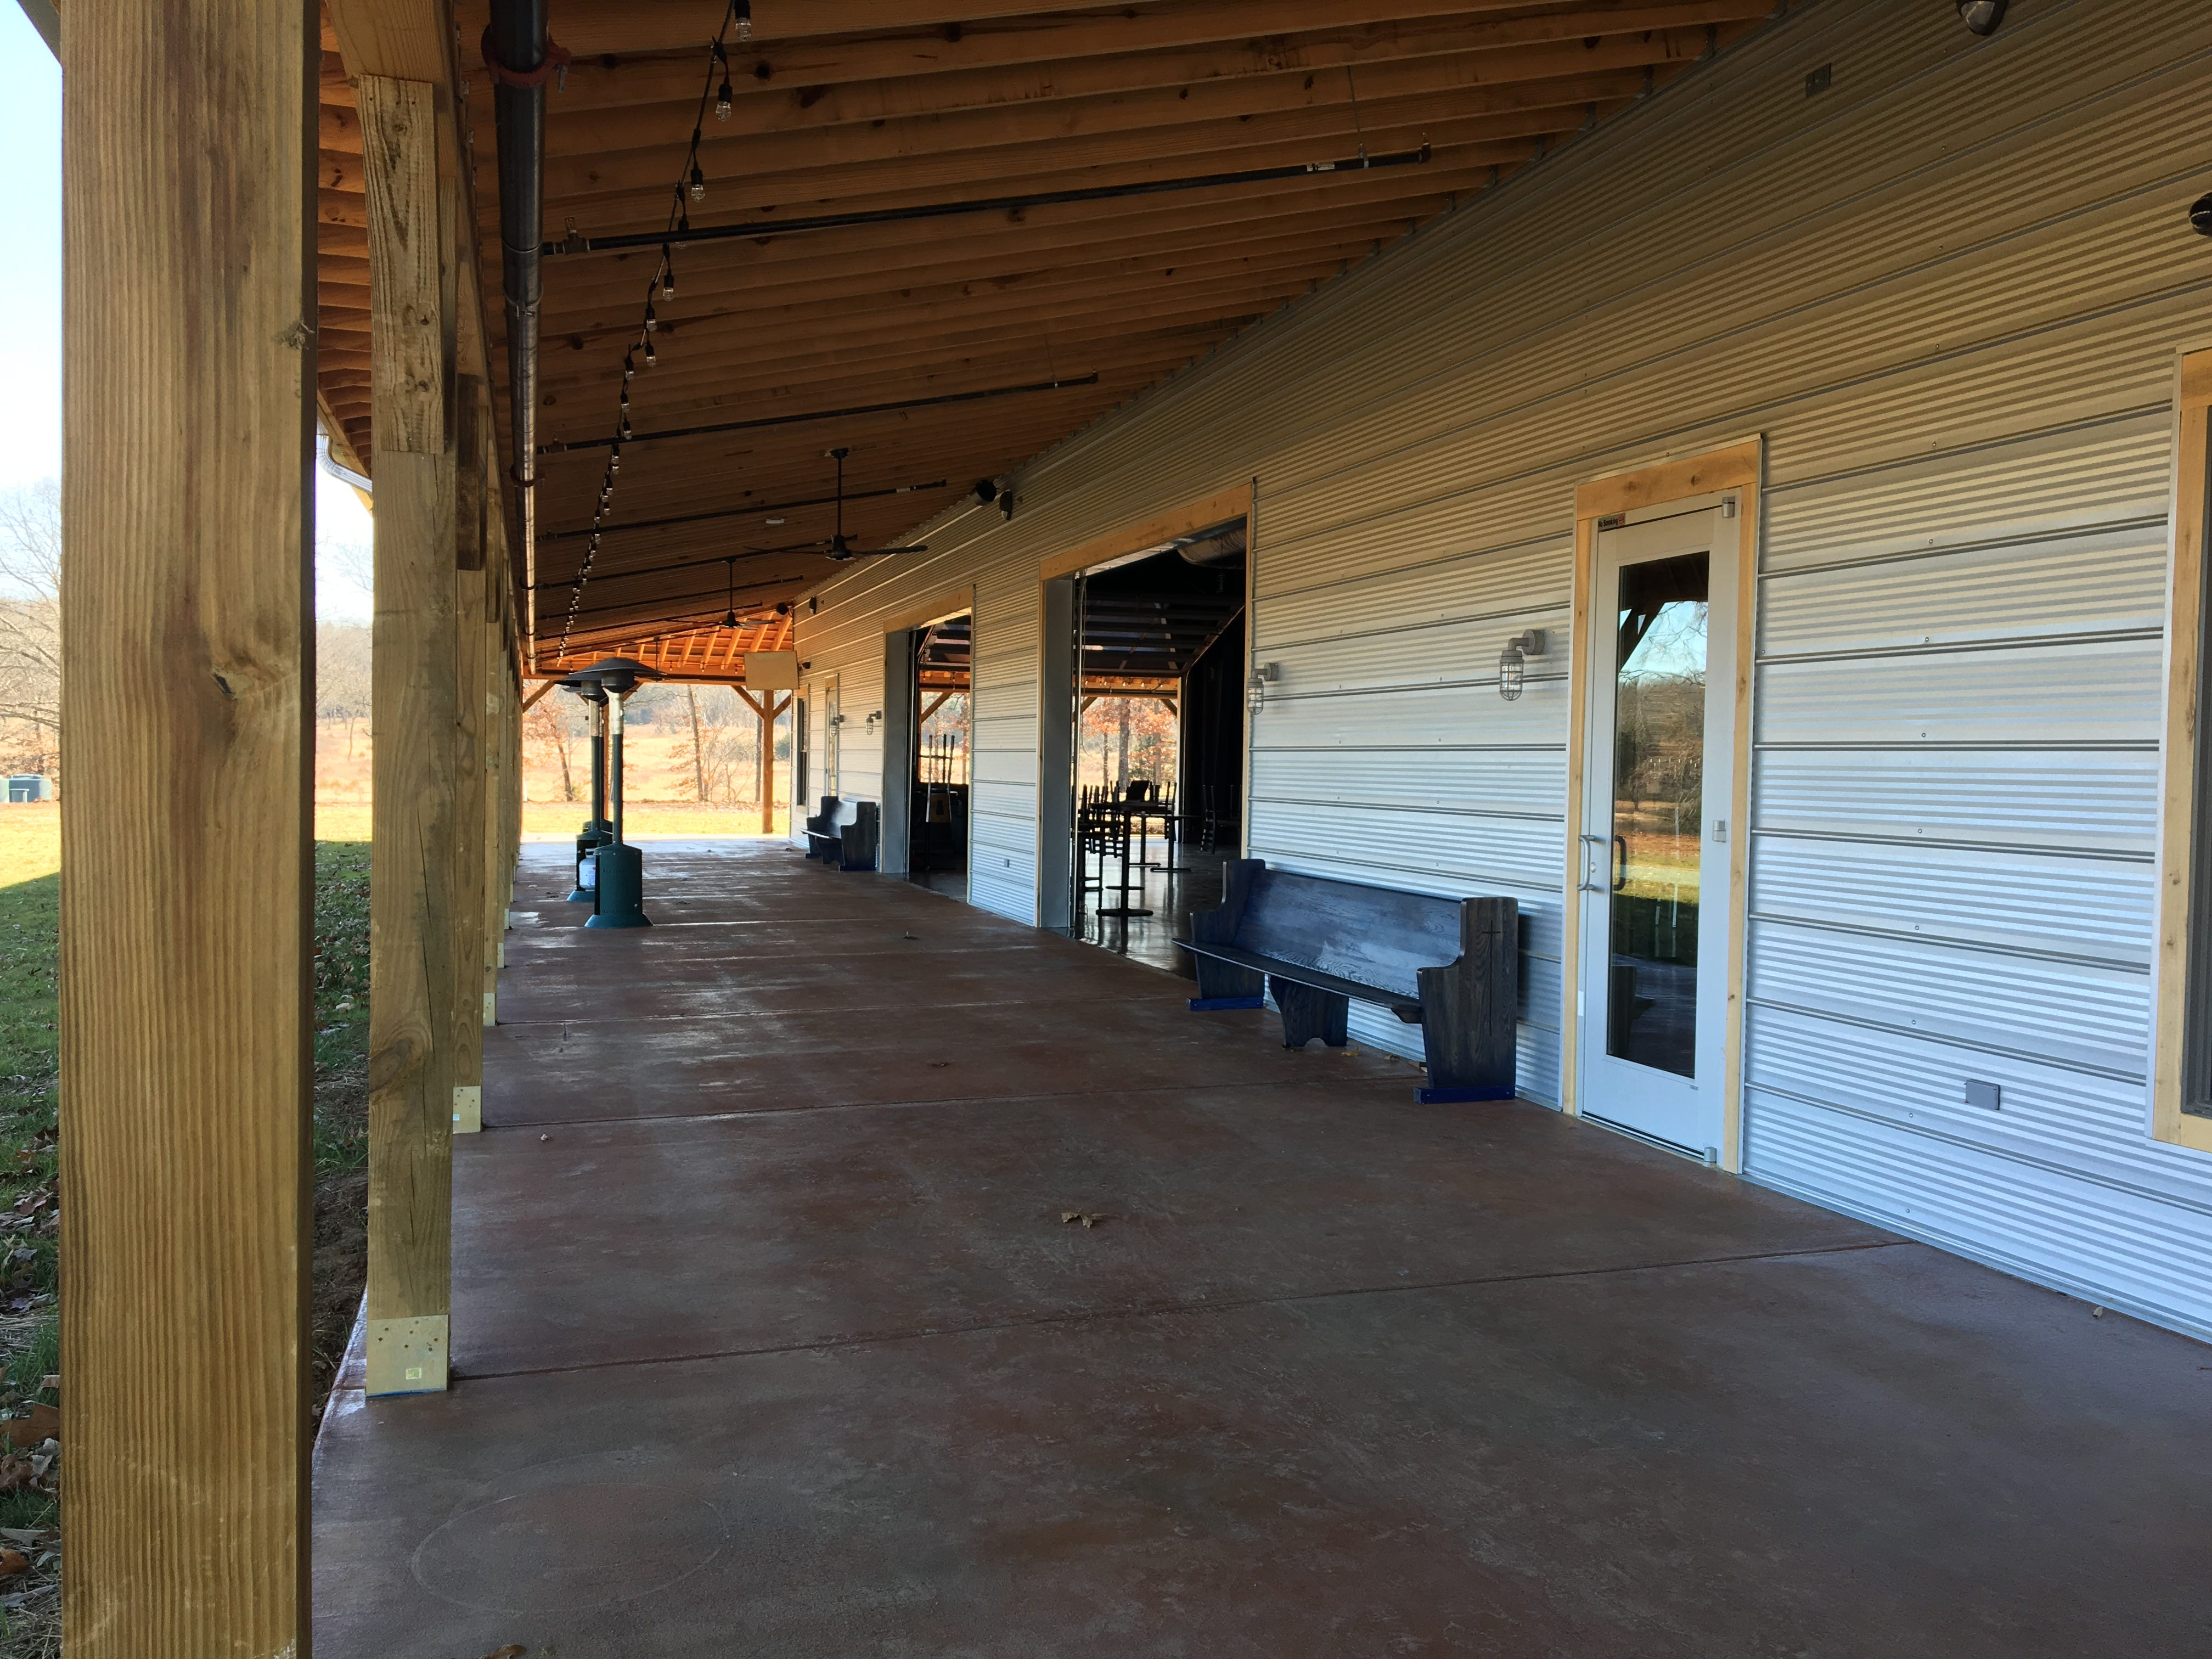 Guests at Hop Springs Taproom can enjoy the outdoors from inside the building or outside on the covered porch that overlooks the 83-acre property.